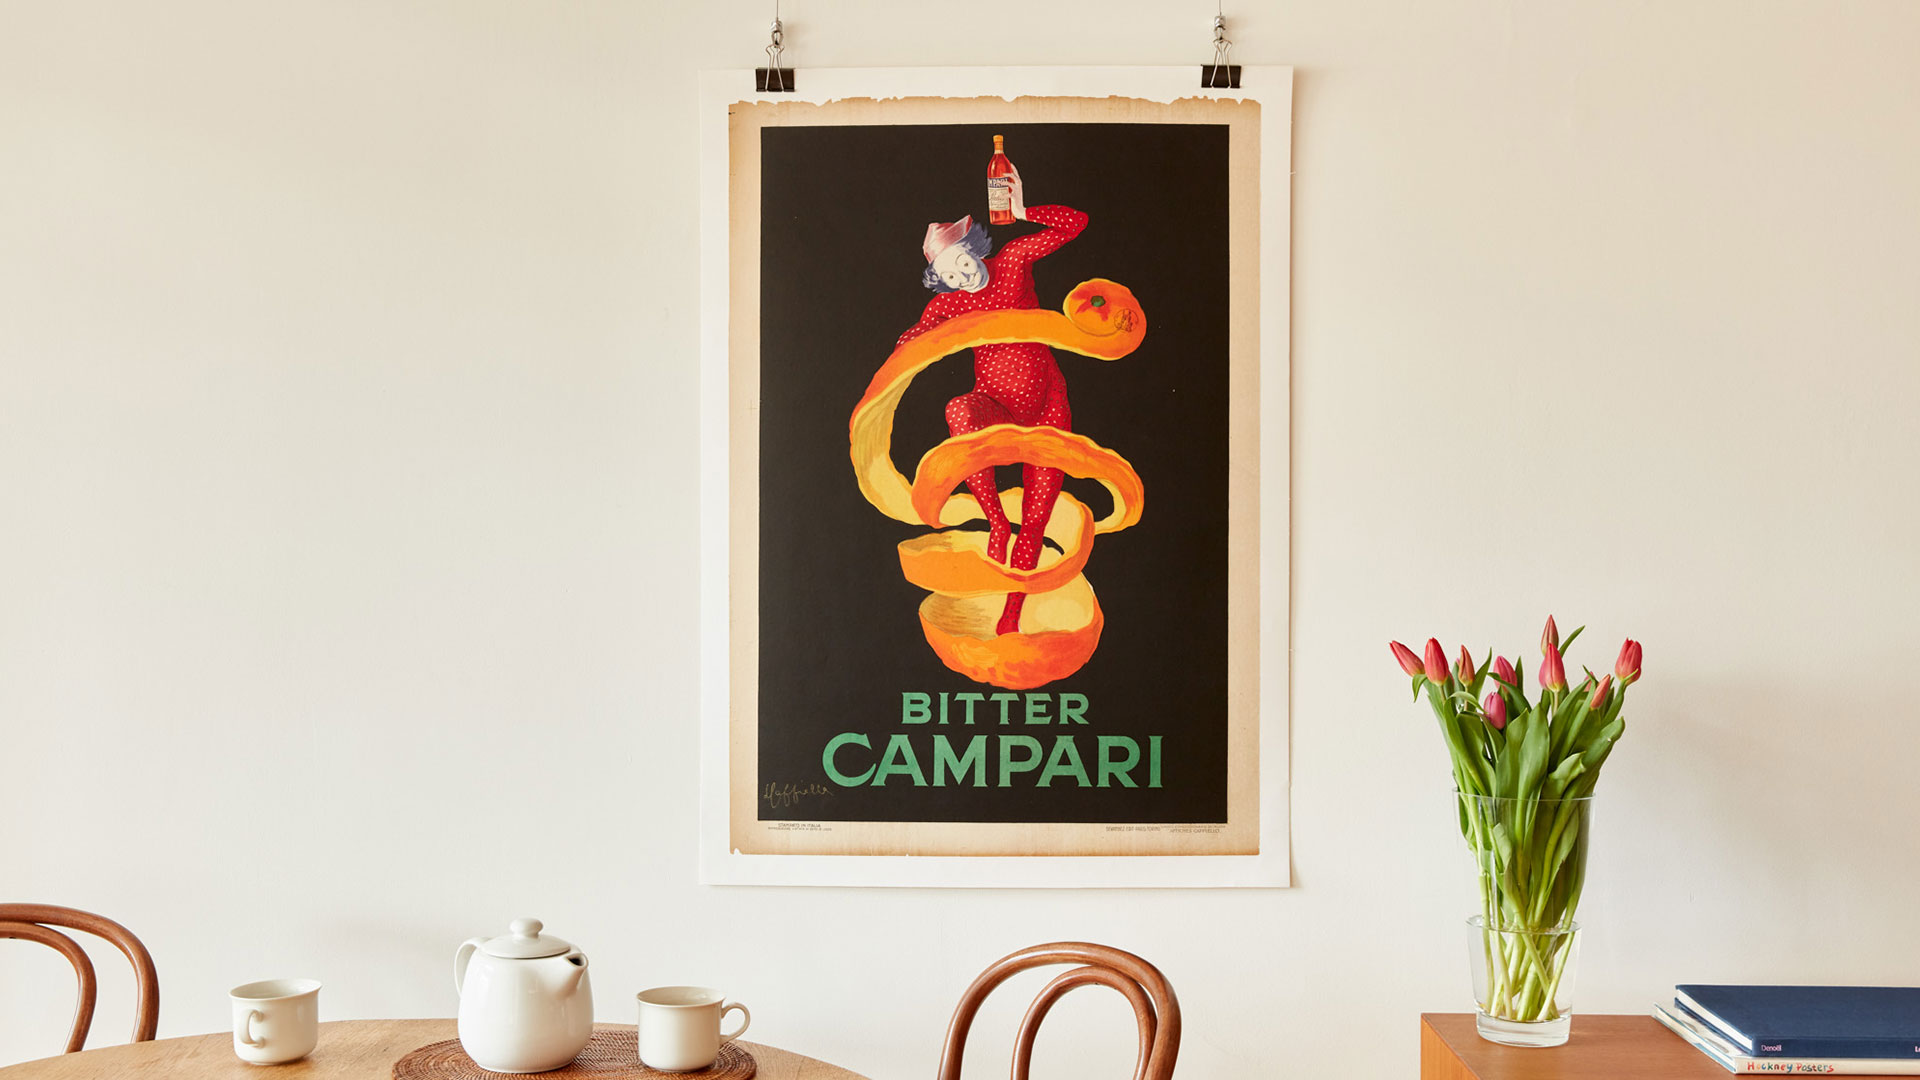 //letitiamorris.com/wp-content/uploads/2019/11/slider_campari_posters.jpg